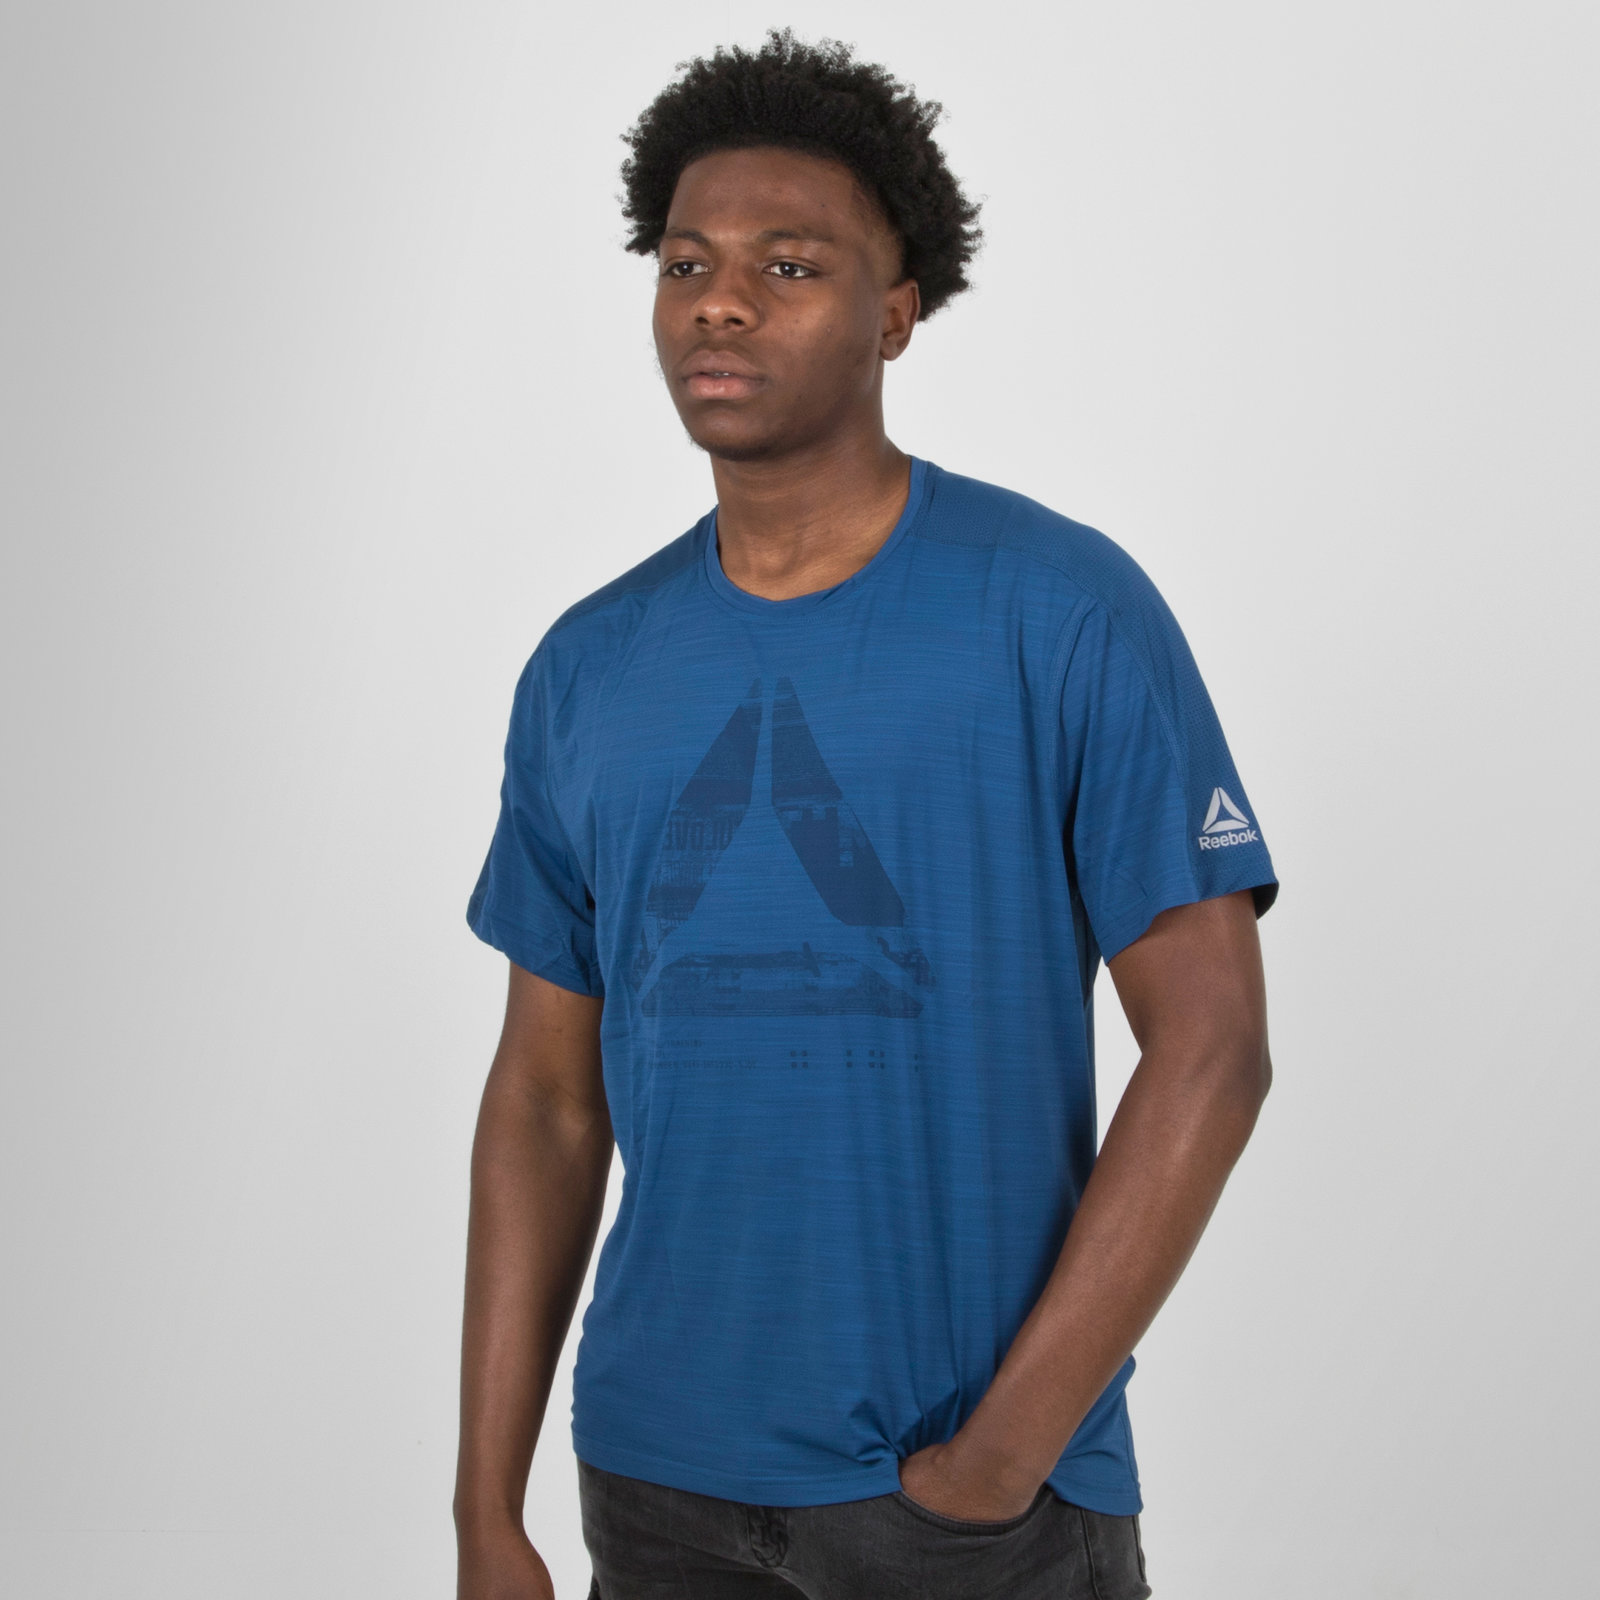 Image of Activchill Graphic Move S/S Training T-Shirt